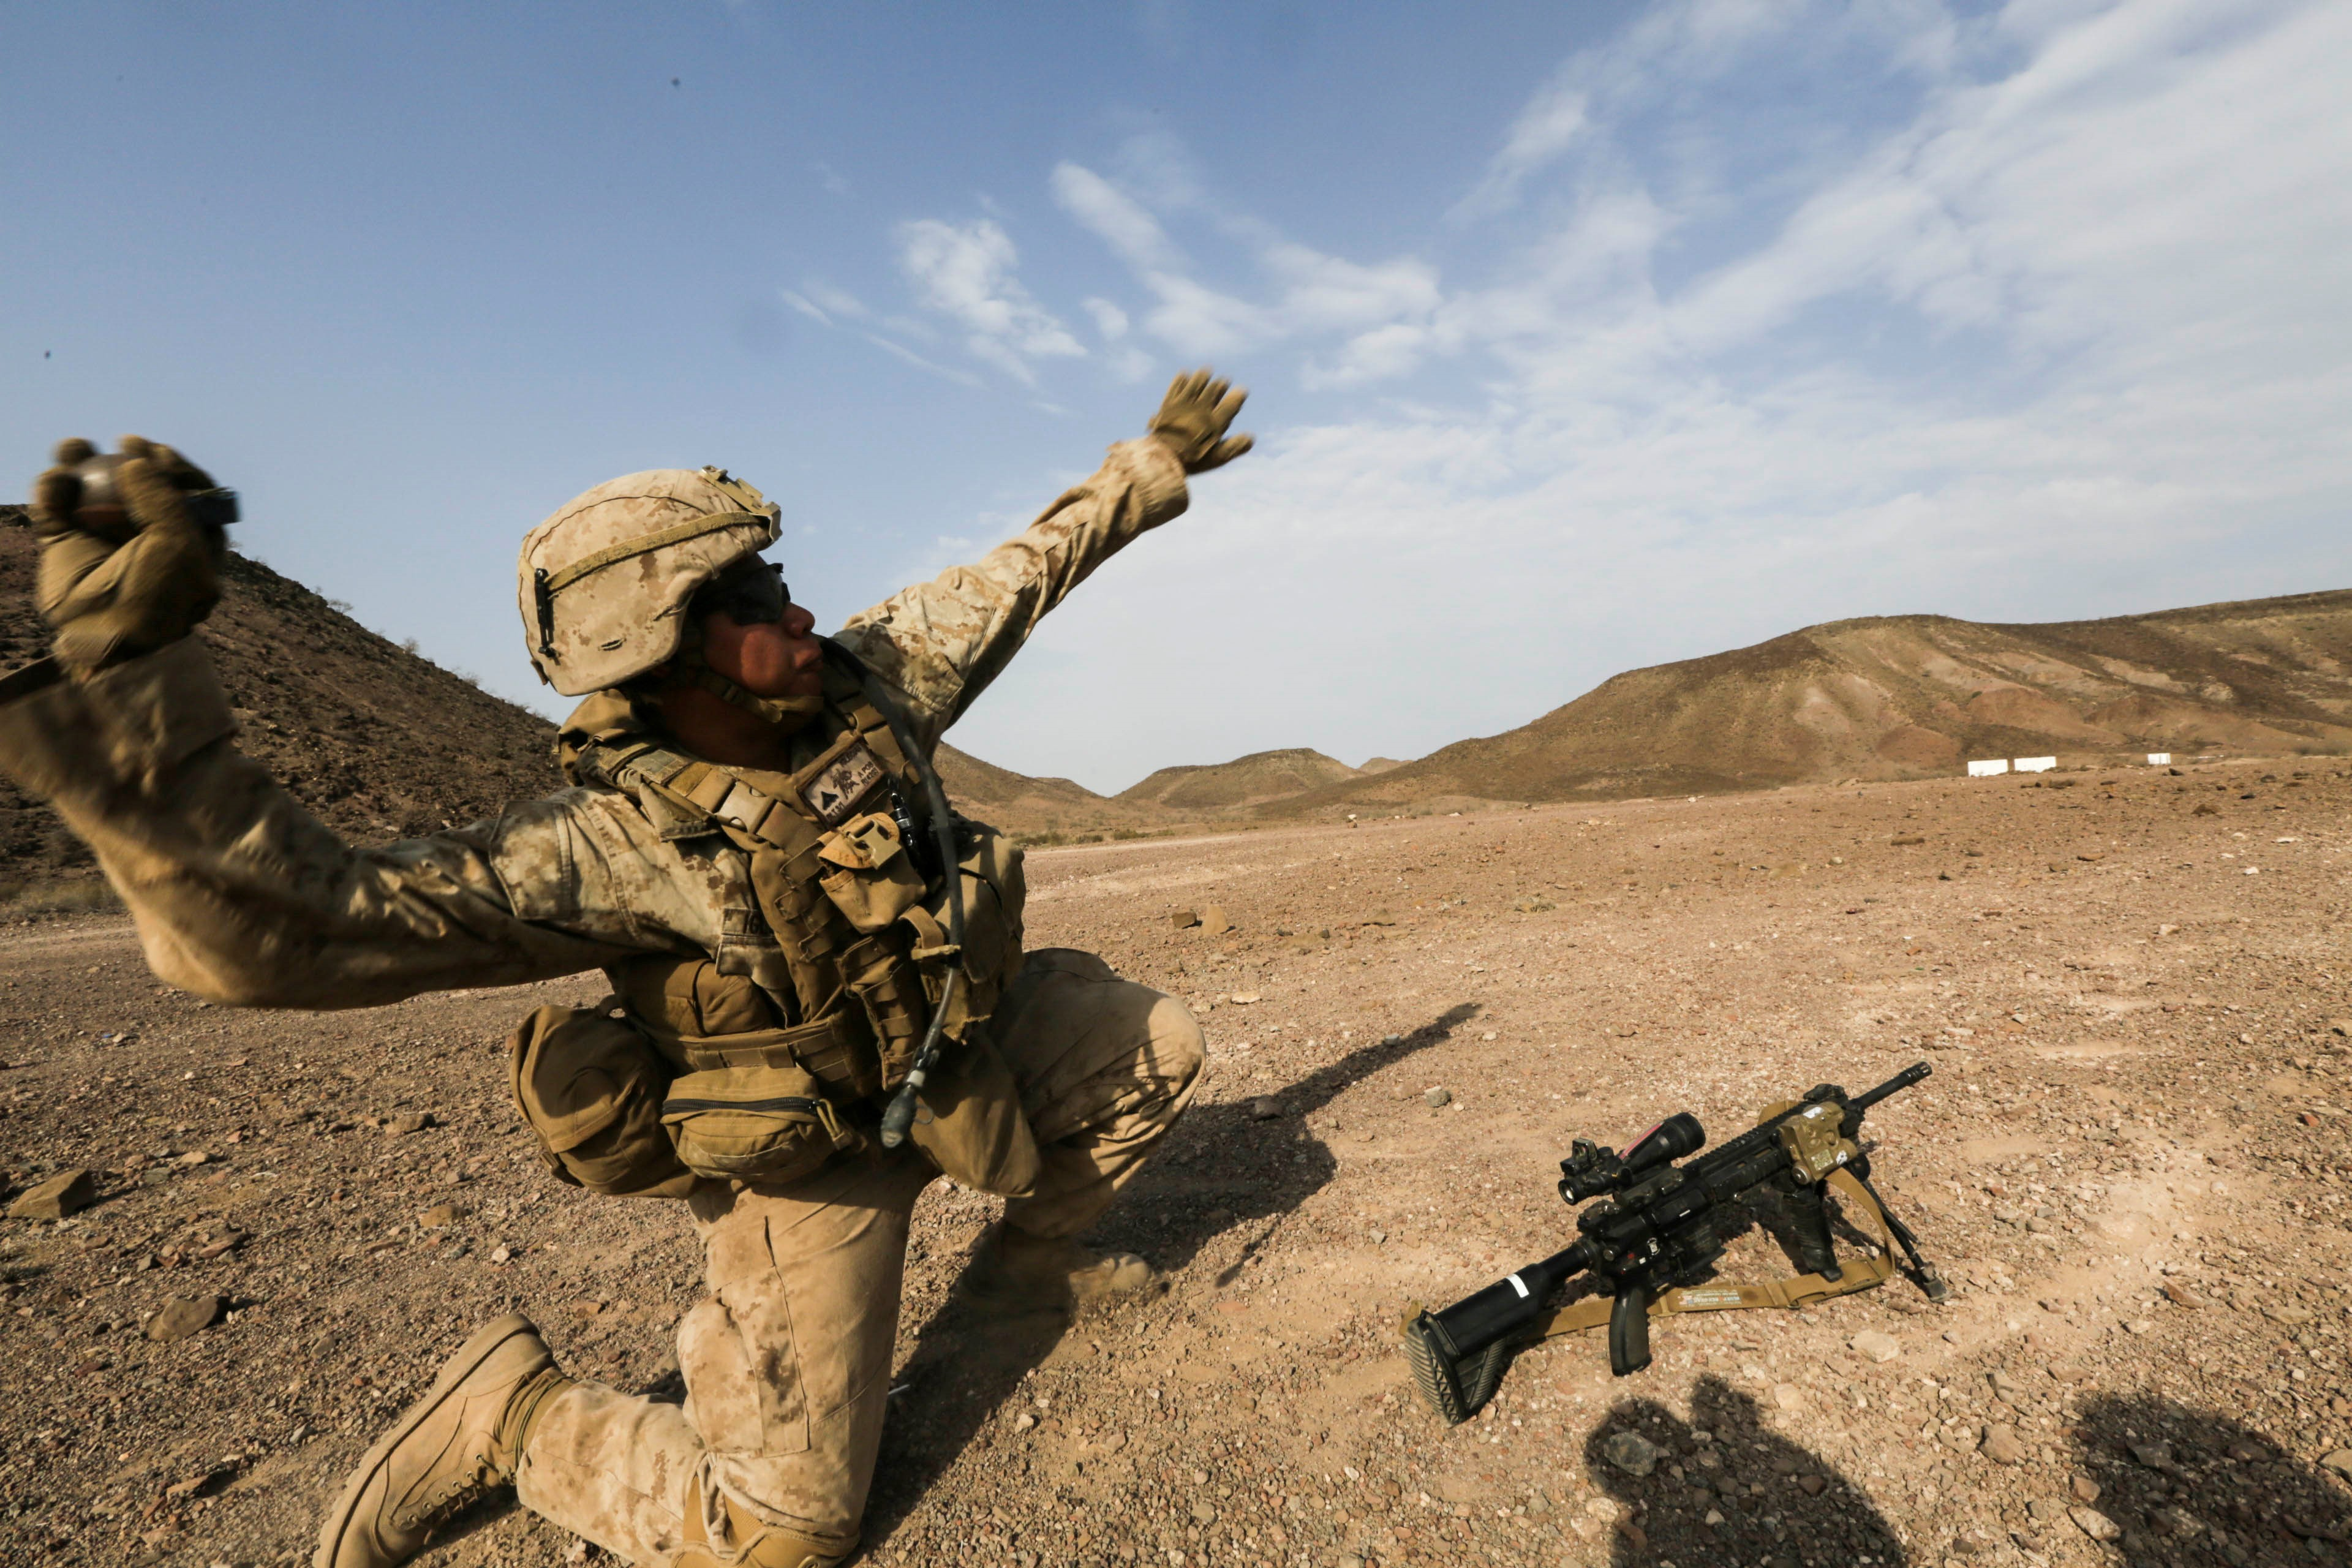 ARTA BEACH, Djibouti (July 22, 2015) A U.S. Marine with Battalion Landing Team 3rd Battalion, 1st Marine Regiment, 15th Marine Expeditionary Unit throws a practice grenade during a grenade accuracy exercise.  Elements of the 15th Marine Expeditionary Unit are ashore in Djibouti for sustainment training to maintain and enhance the skills they developed during their pre-deployment training period.  The 15th MEU is currently deployed in support of maritime security operations and theater security cooperation efforts in the U.S. 5th and 6th Fleet areas of operation. (U.S. Marine Corps photo by Sgt. Jamean Berry/Released)